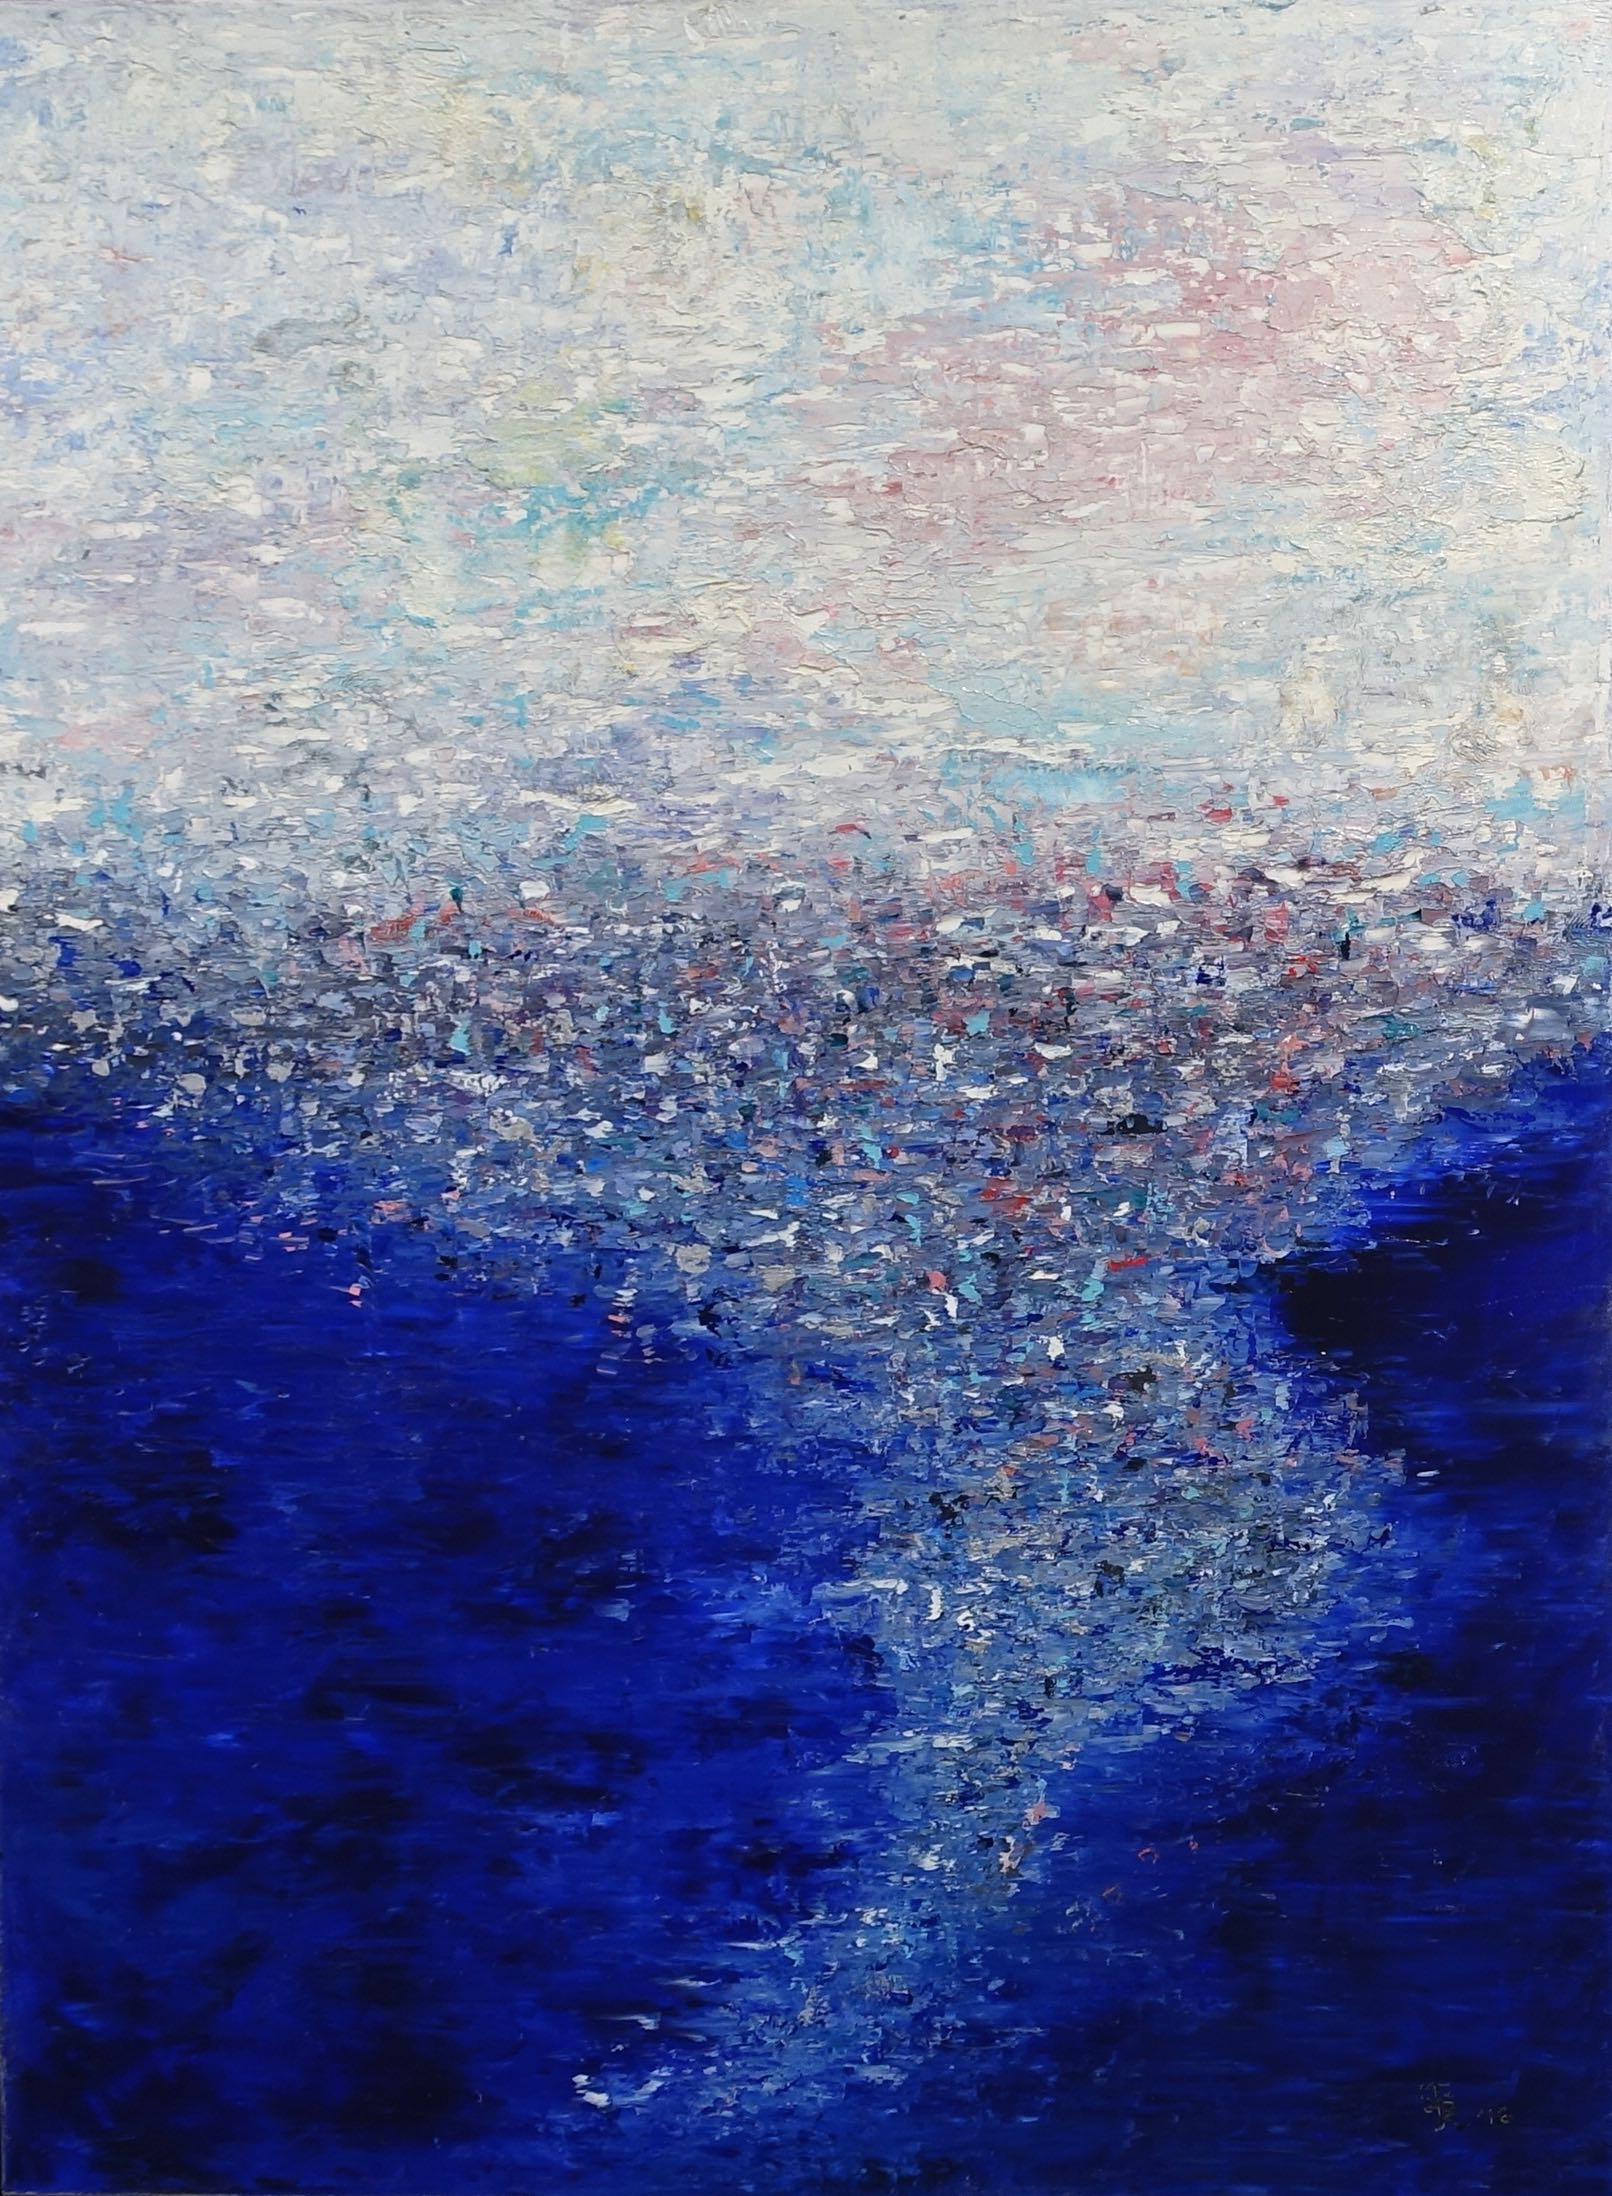 Jill S. Krutick, DREAMSCAPE 5, Oil on canvas, 40 x 30 inches (76.2 x 101.6 cm). Gifted by Bruce Helander to the Coral Springs Museum of Art, 2017.